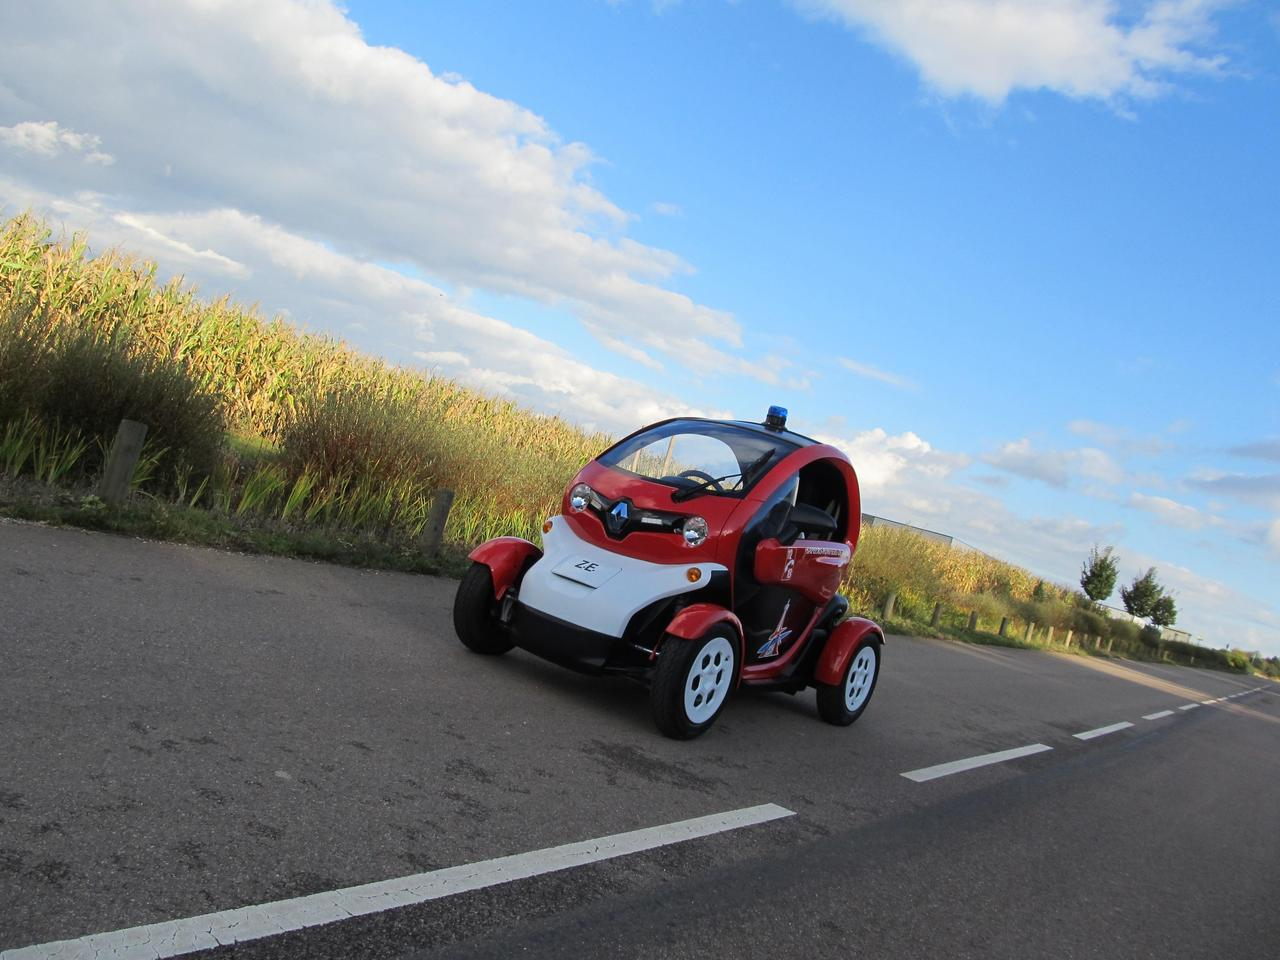 The Renault Twizy...an unlikely firetruck